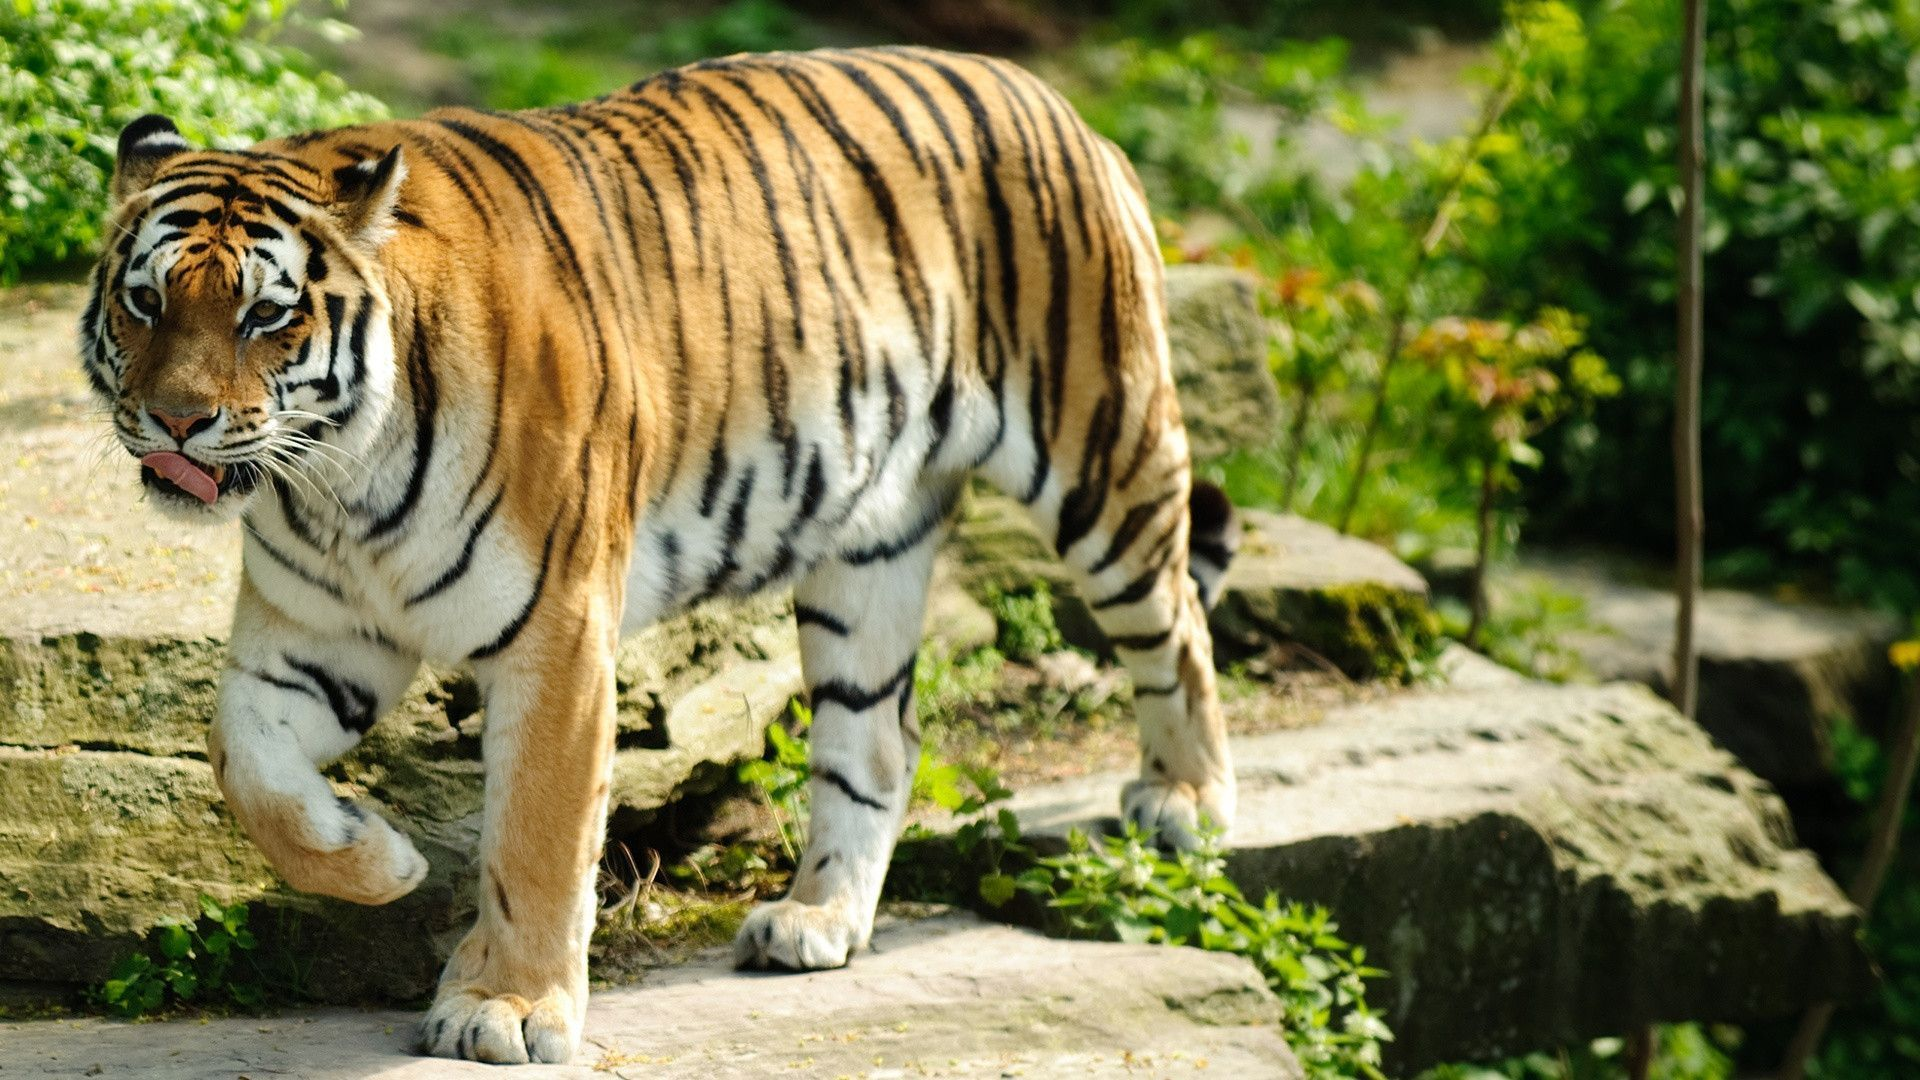 Best Tiger Wallpapers Hd Wallpapers Tiger Wallpaper Animal Wallpaper Pet Tiger